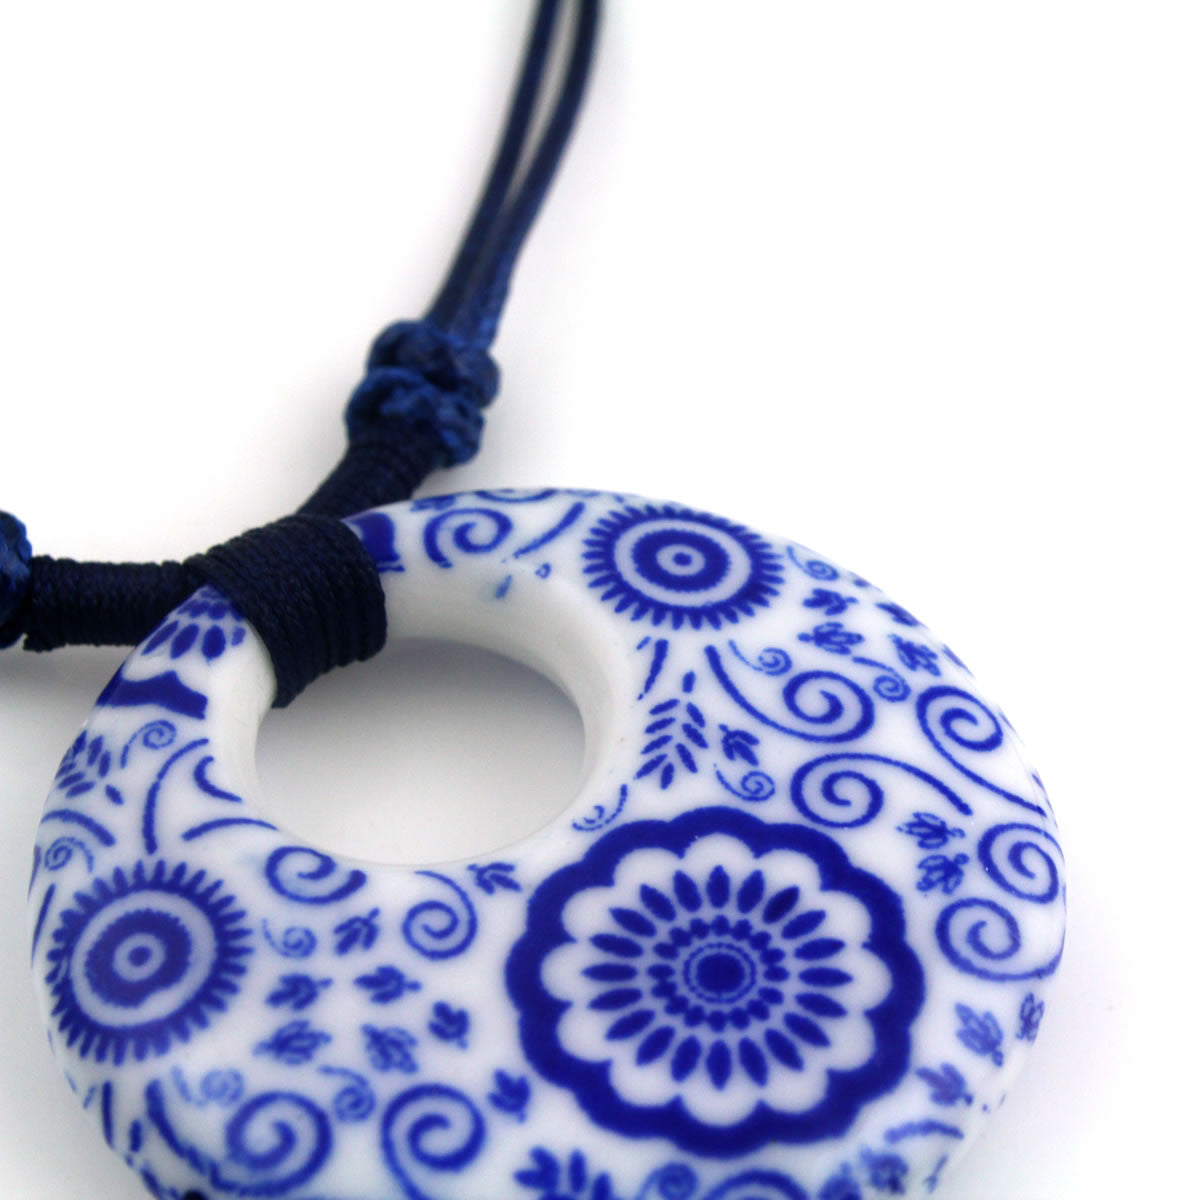 Handmade clavicle blue and white porcelain necklace